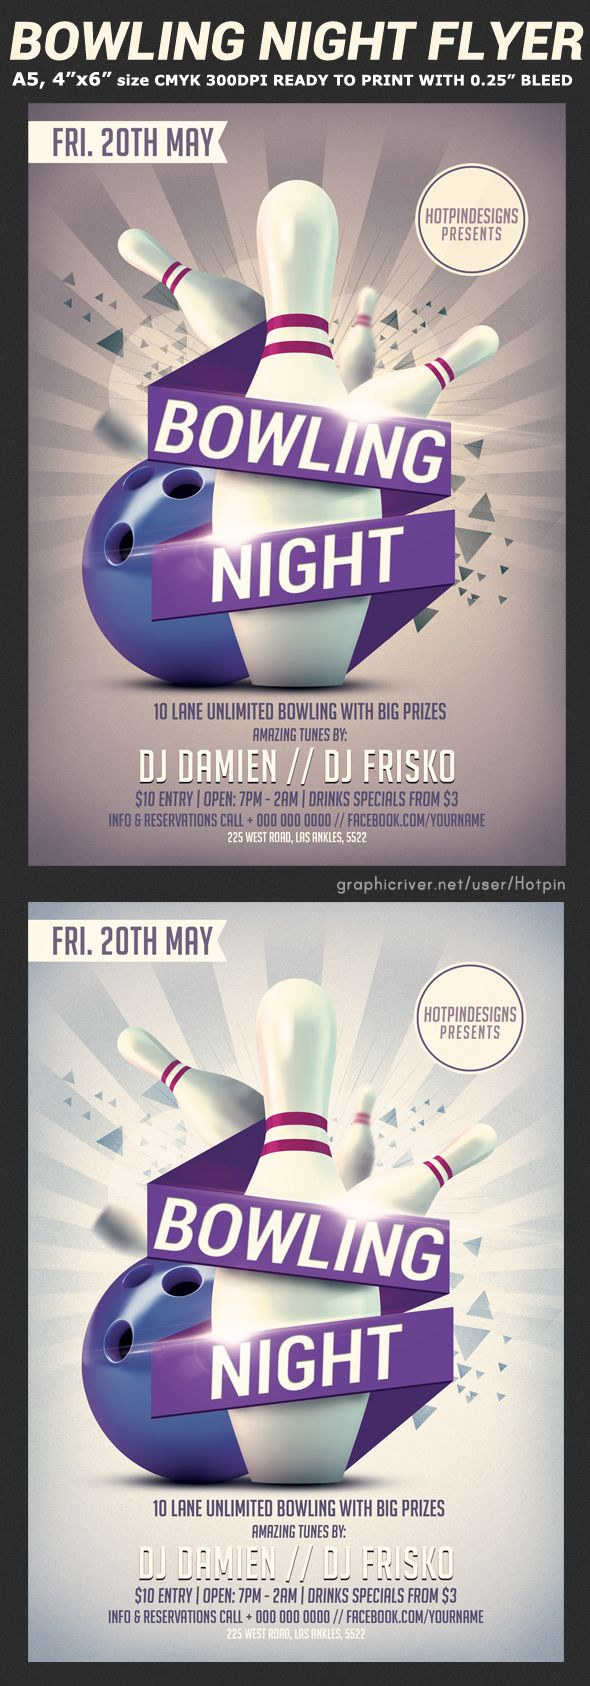 Bowling Night Flyer Template V2 On Behance  Bowling Flyer Template Free